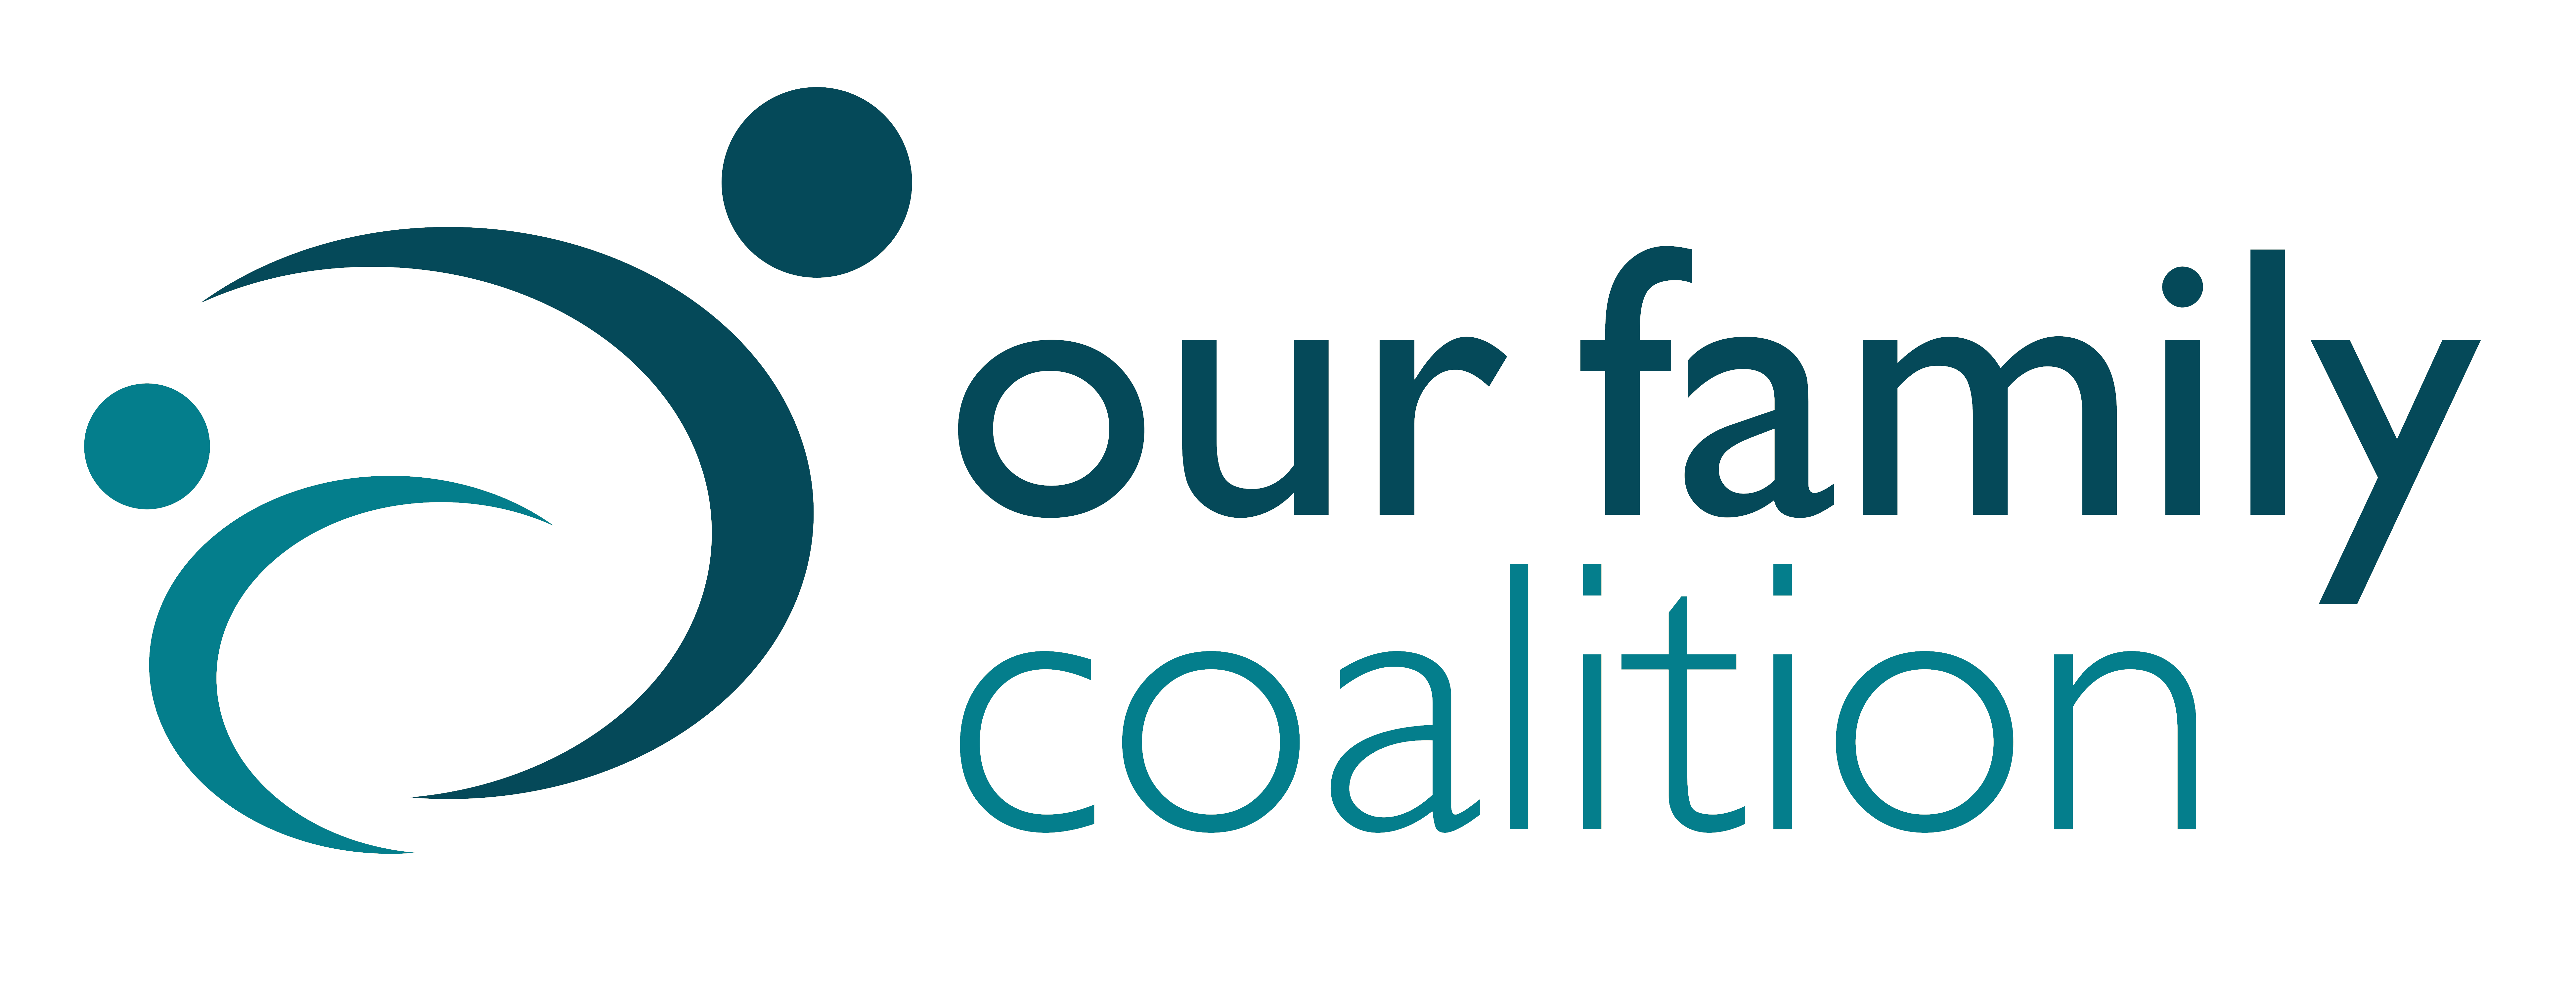 our-family-coalition-logo